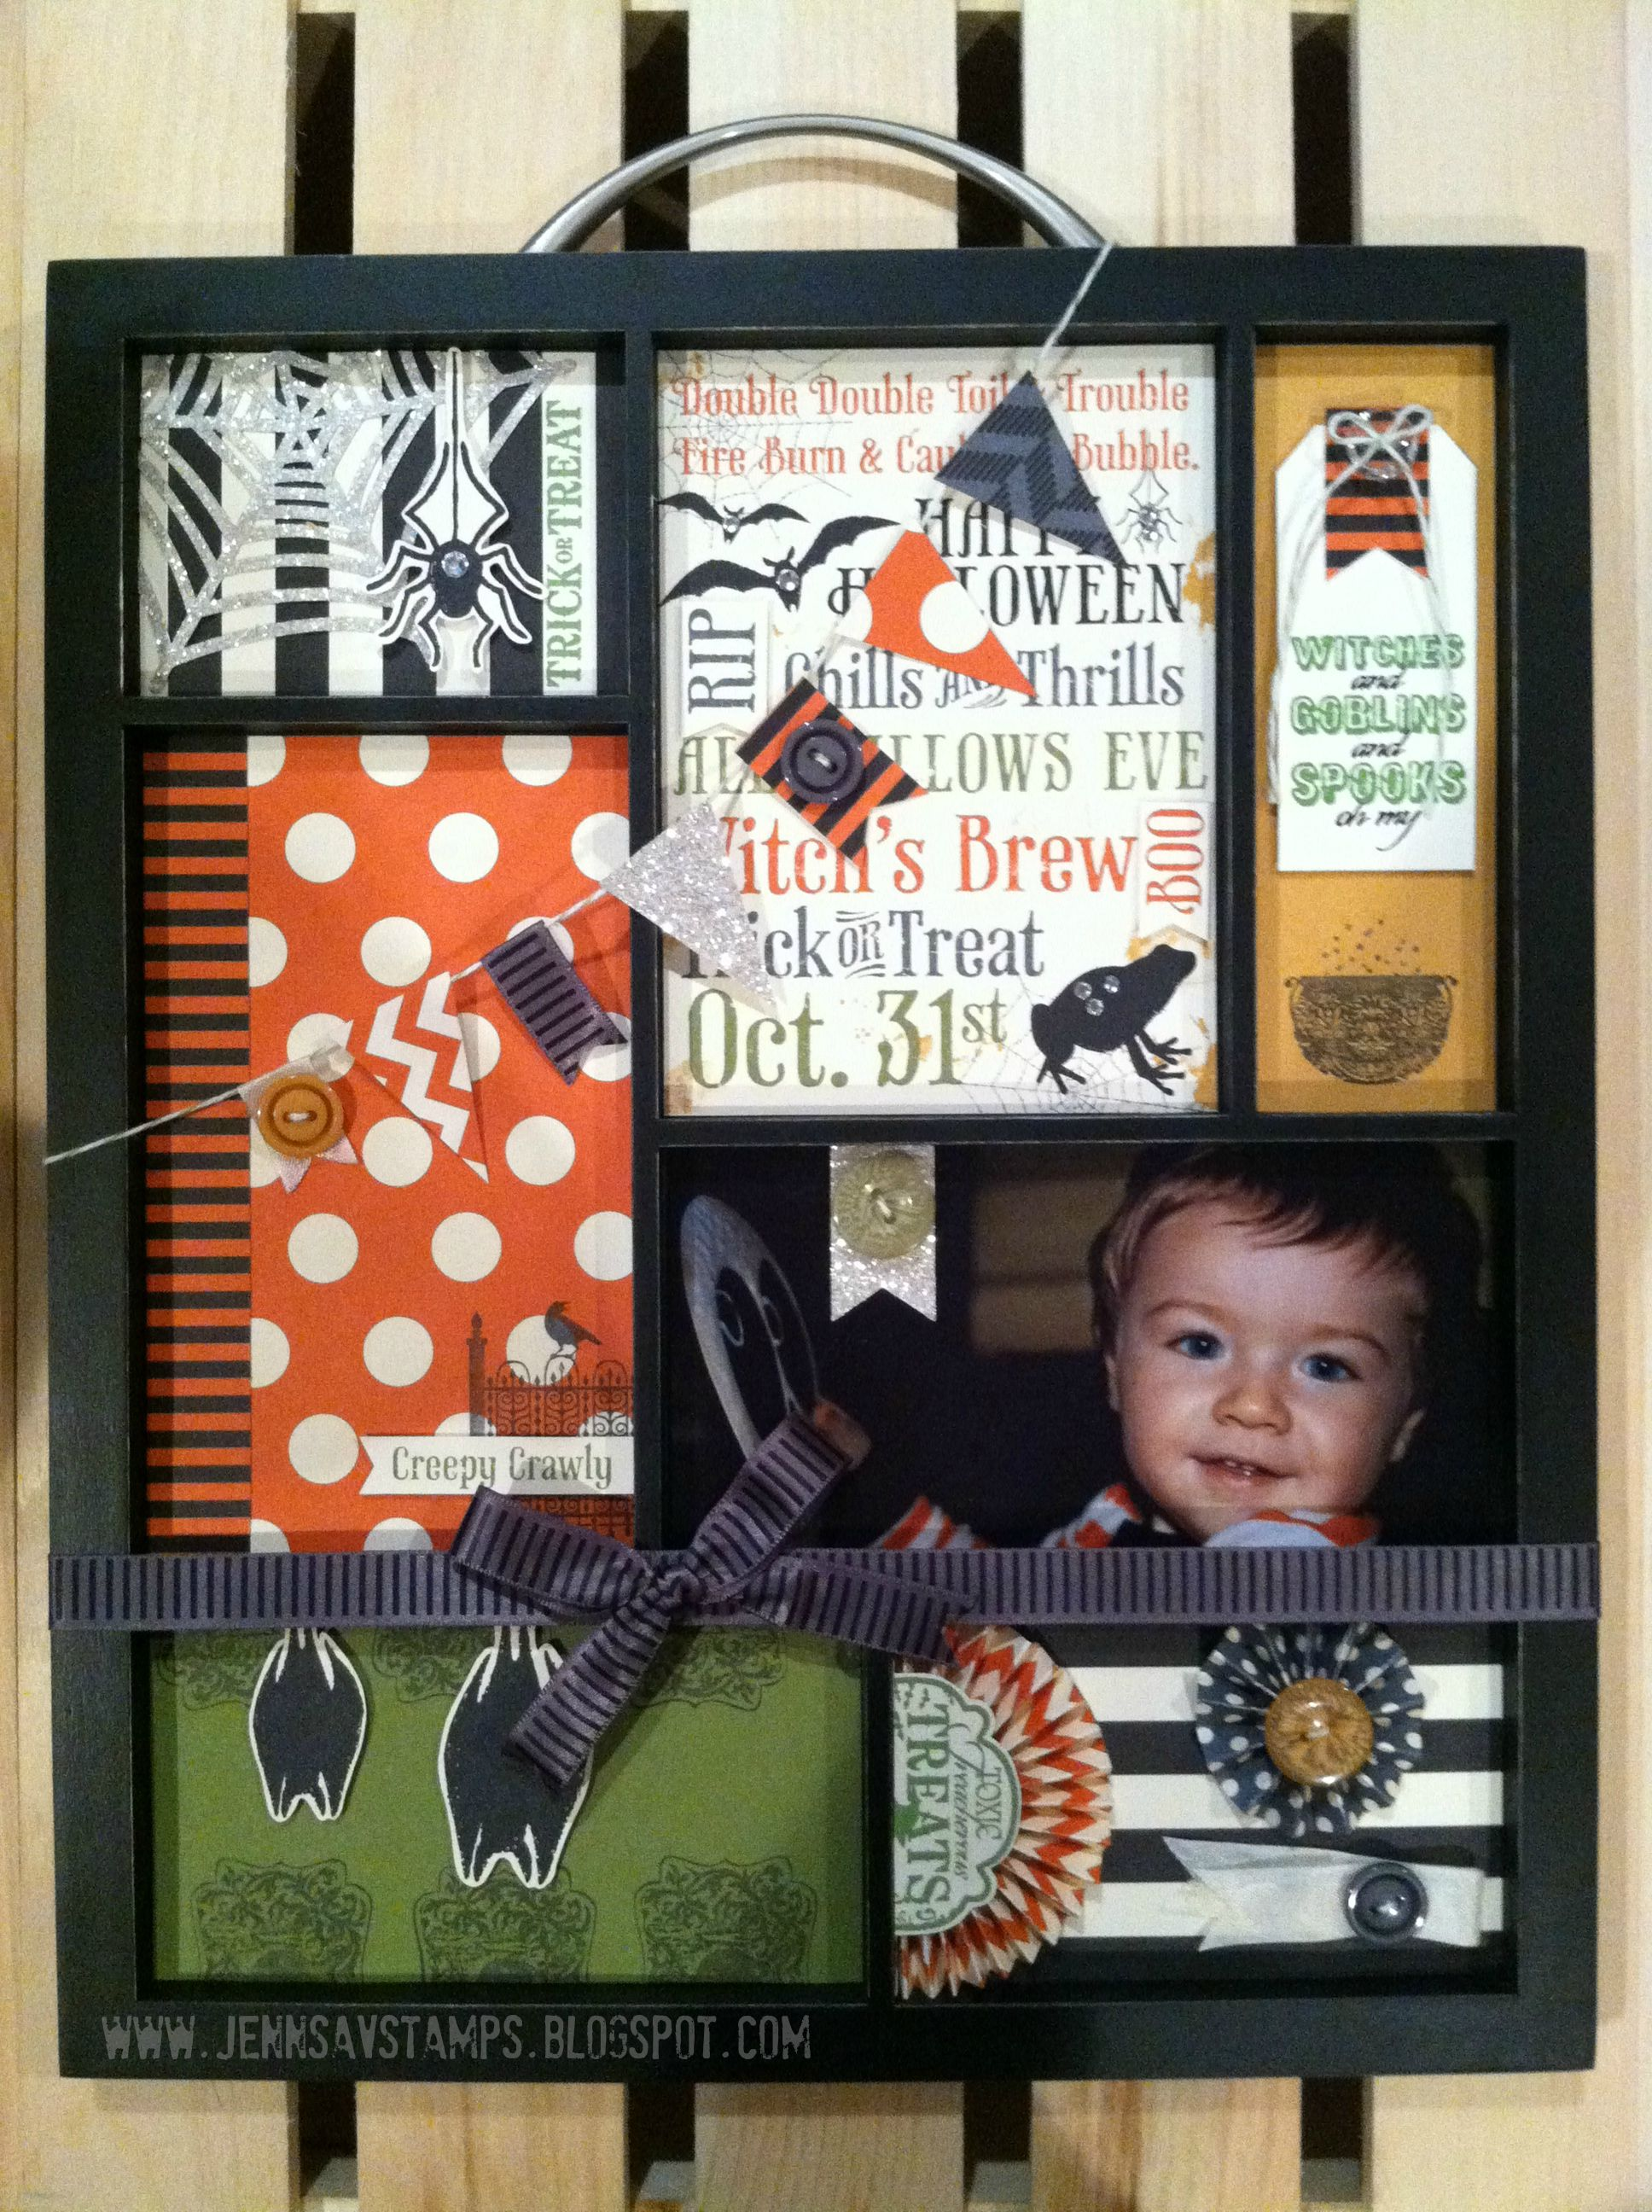 This tray was SO much fun to make! I used Stampin' Up! halloween papers and stamps to create this! Too cute!